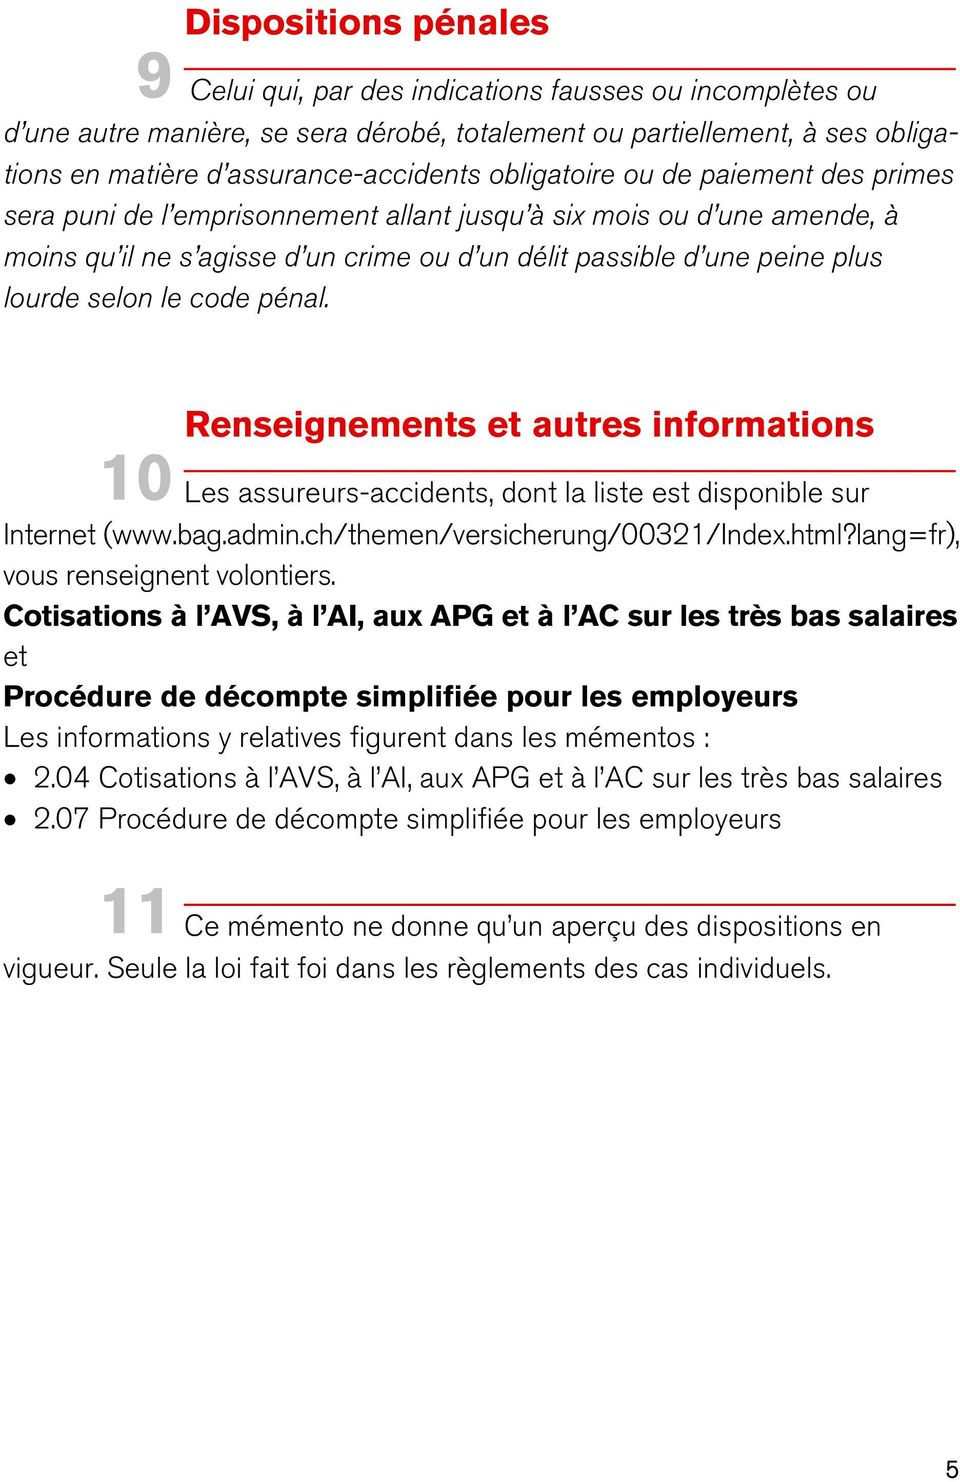 le code pénal. Renseignements et autres informations 10 Les assureurs-accidents, dont la liste est disponible sur Internet (www.bag.admin.ch/themen/versicherung/00321/index.html?